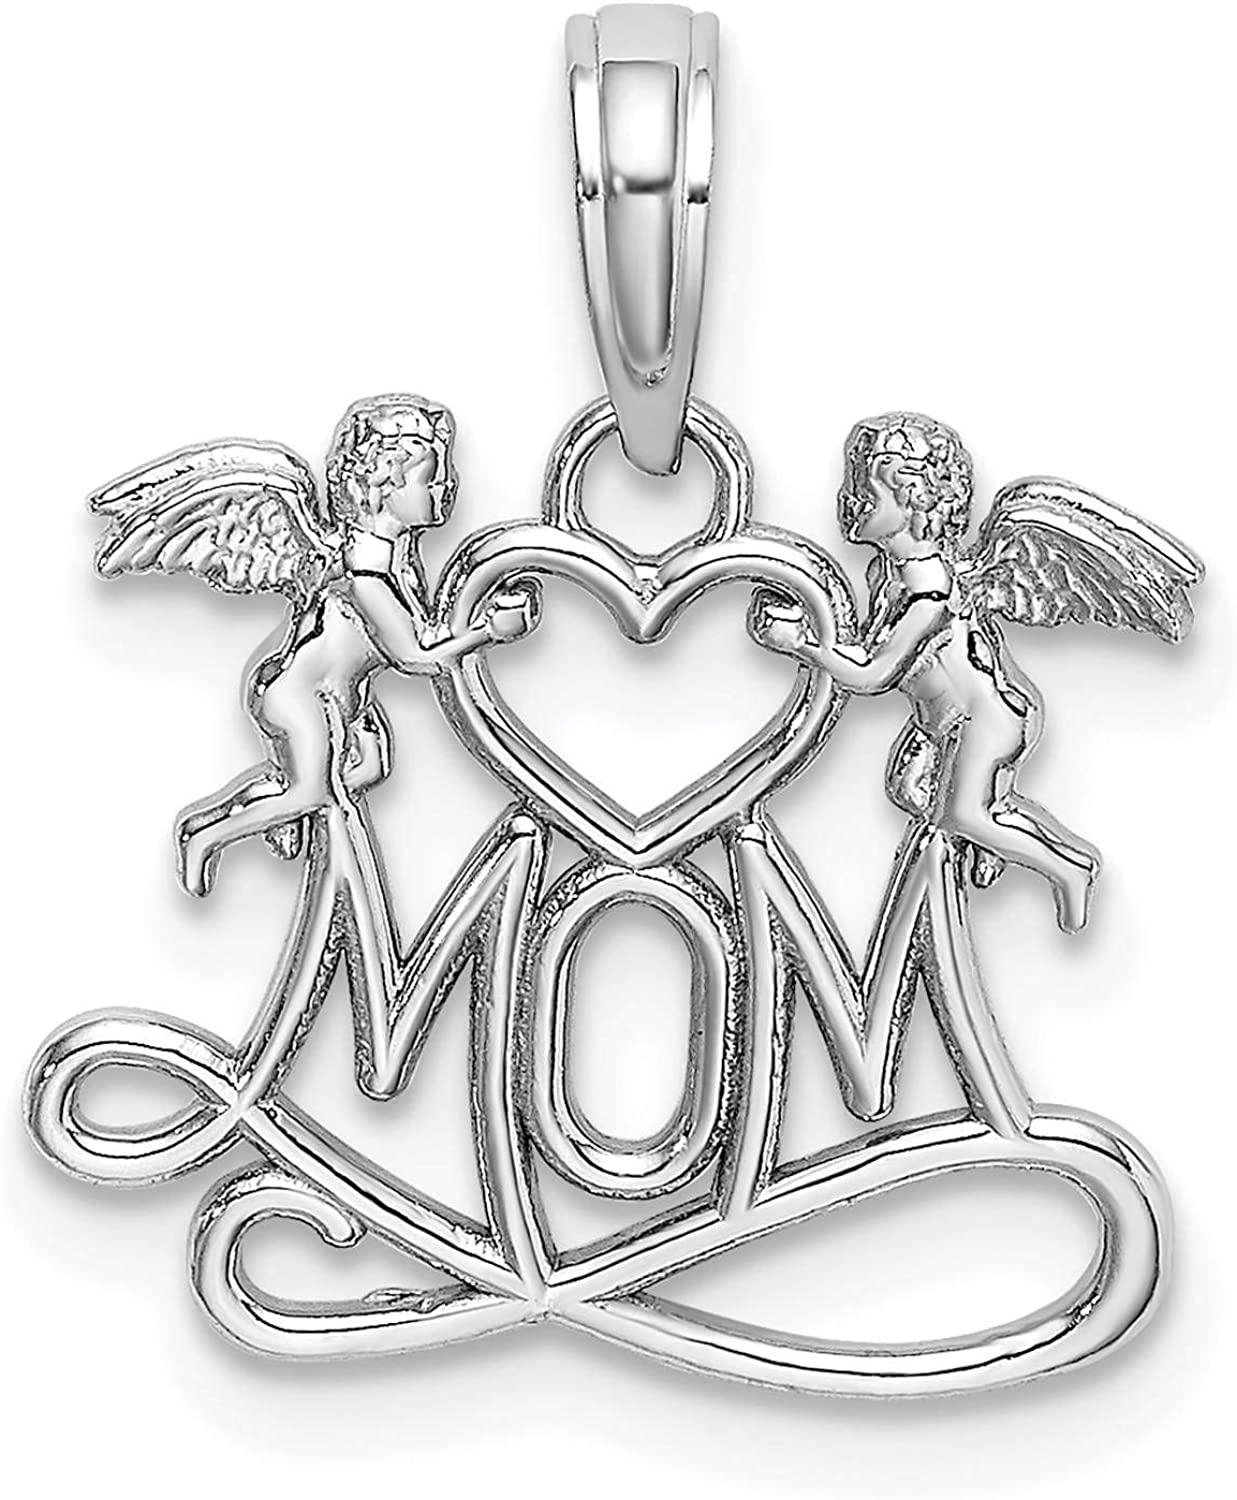 10K White Gold MOM With Heart With Angels Charm Pendant